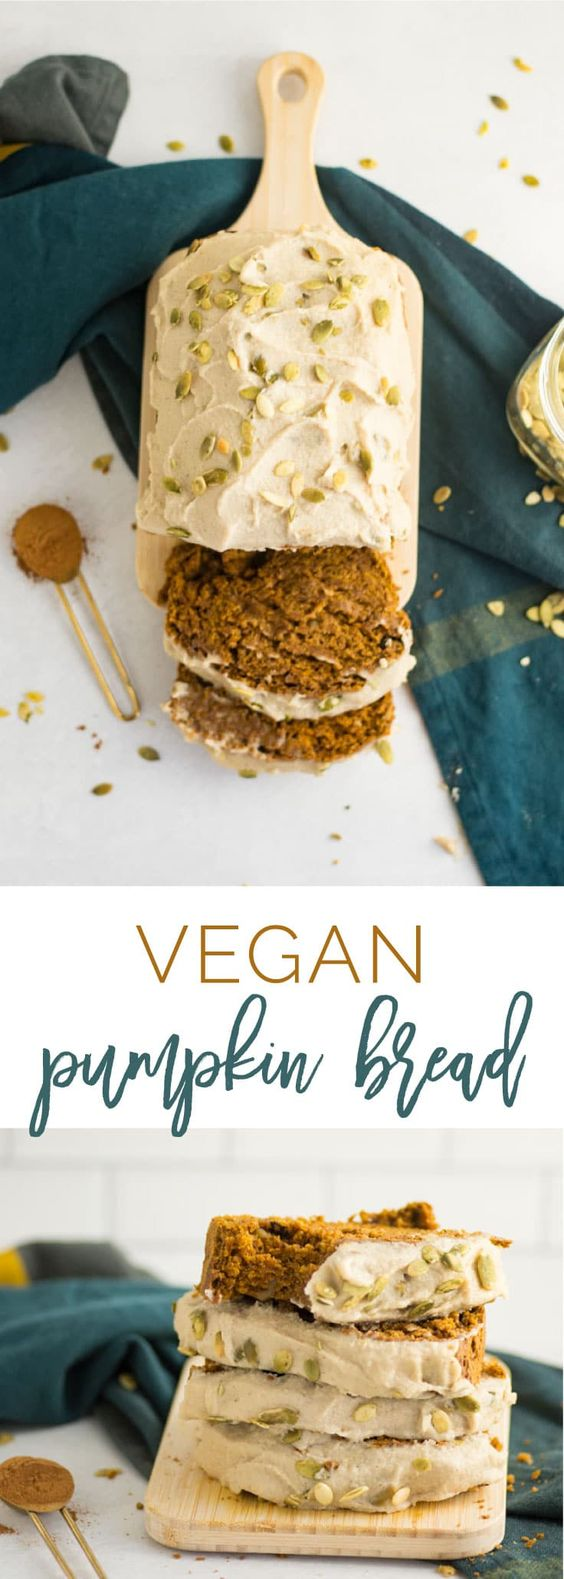 Heres-another-recipe-option-for-Avocado-Pumpkin-Bread-with-Cashew-Icing